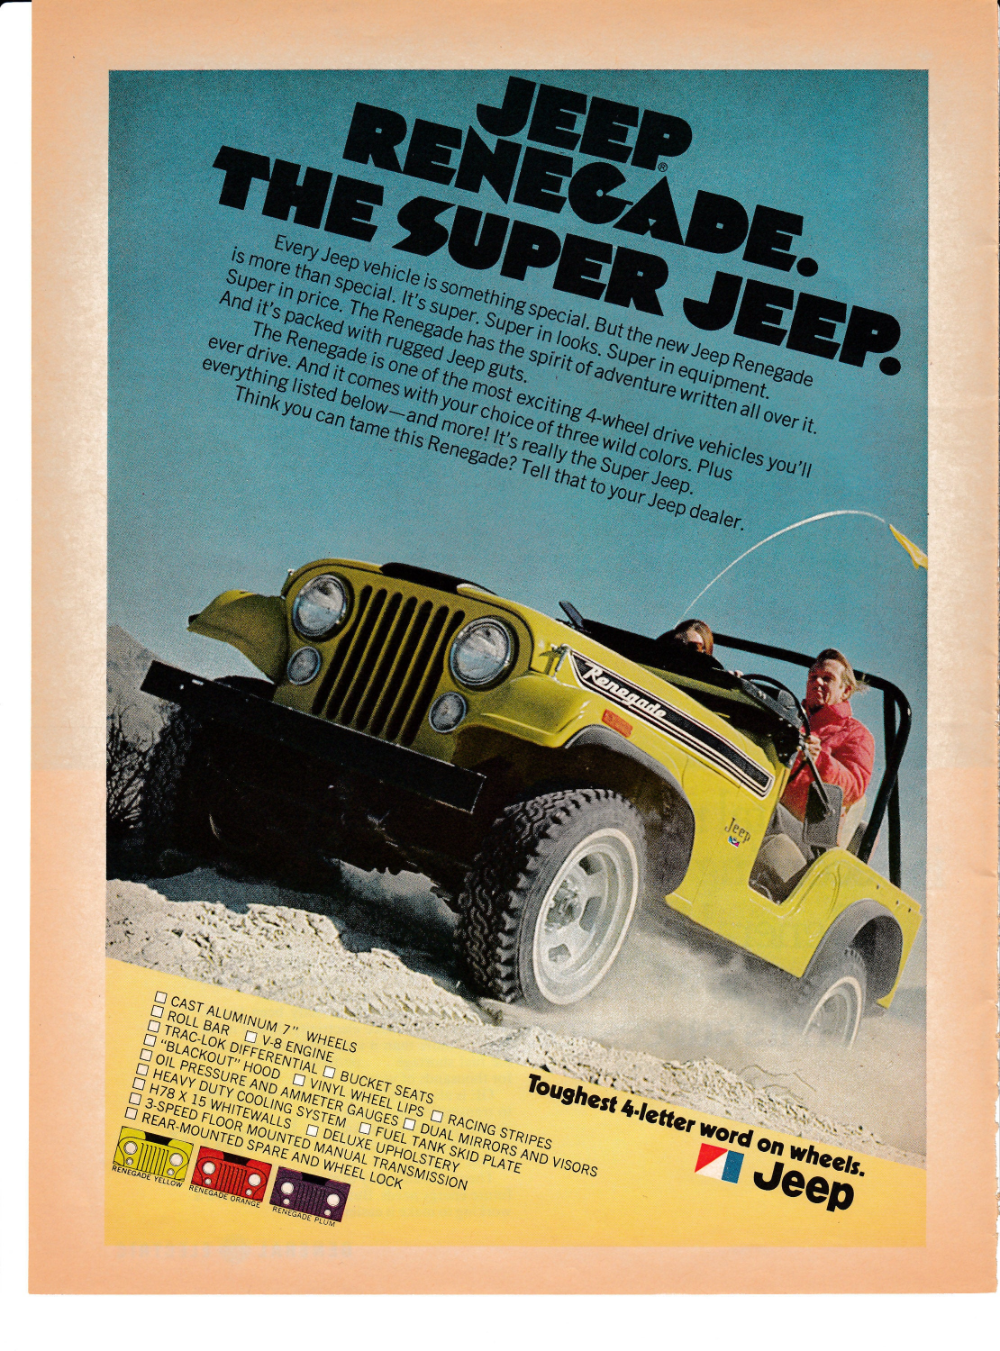 1972 Jeep Renegade The Super Jeep 4 Wheel Drive V 8 Engine